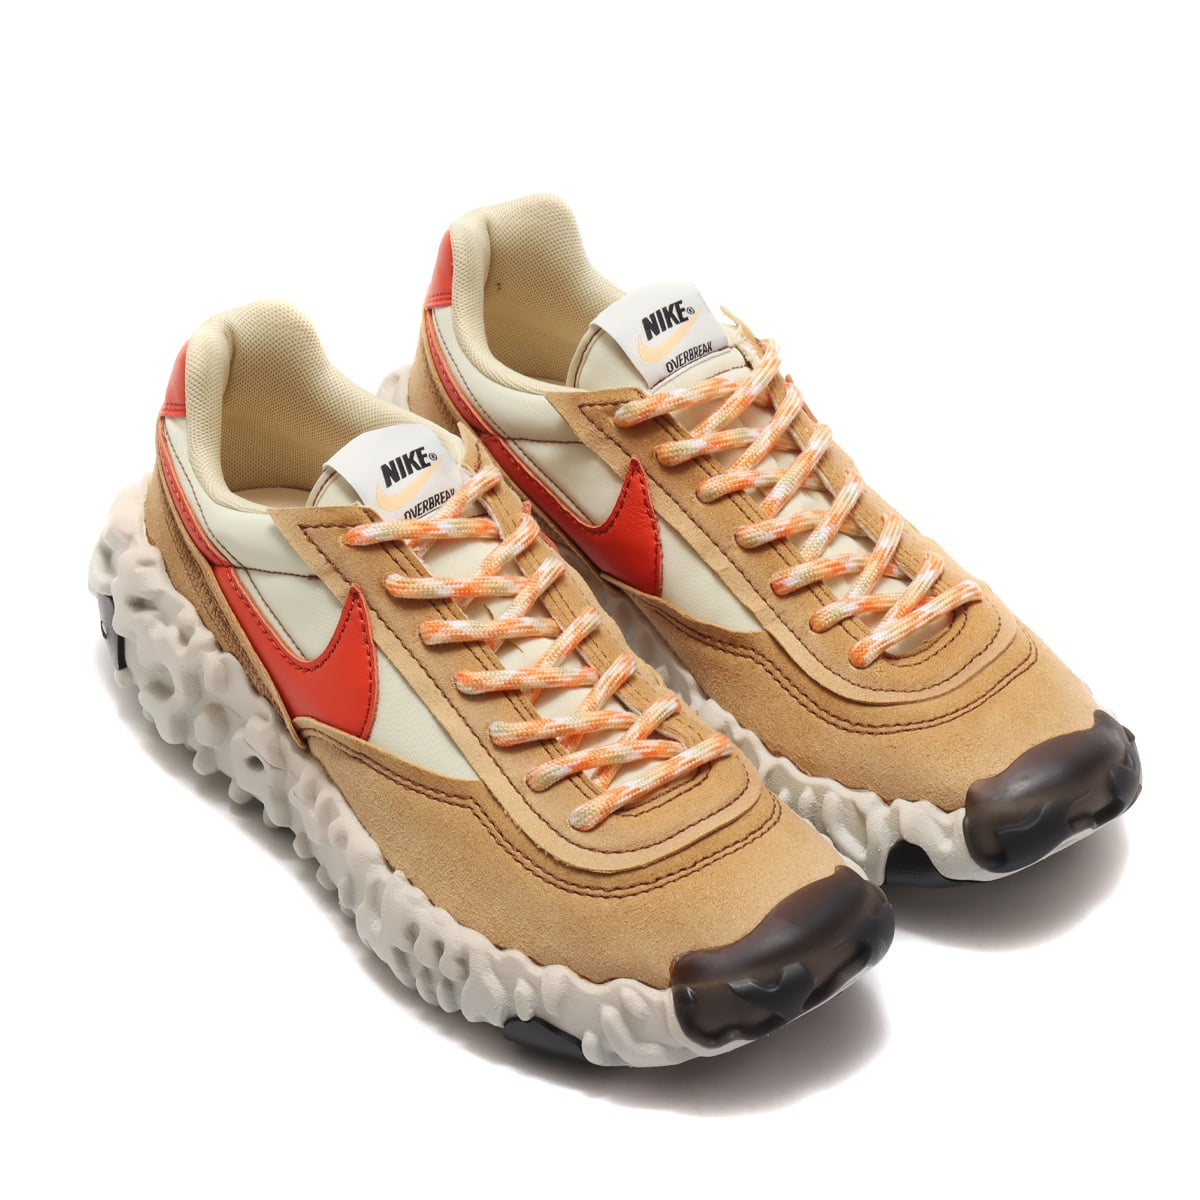 NIKE OVERBREAK SP CLUB GOLD/MANTRA ORANGE-FOSSIL 20HO-S_photo_large